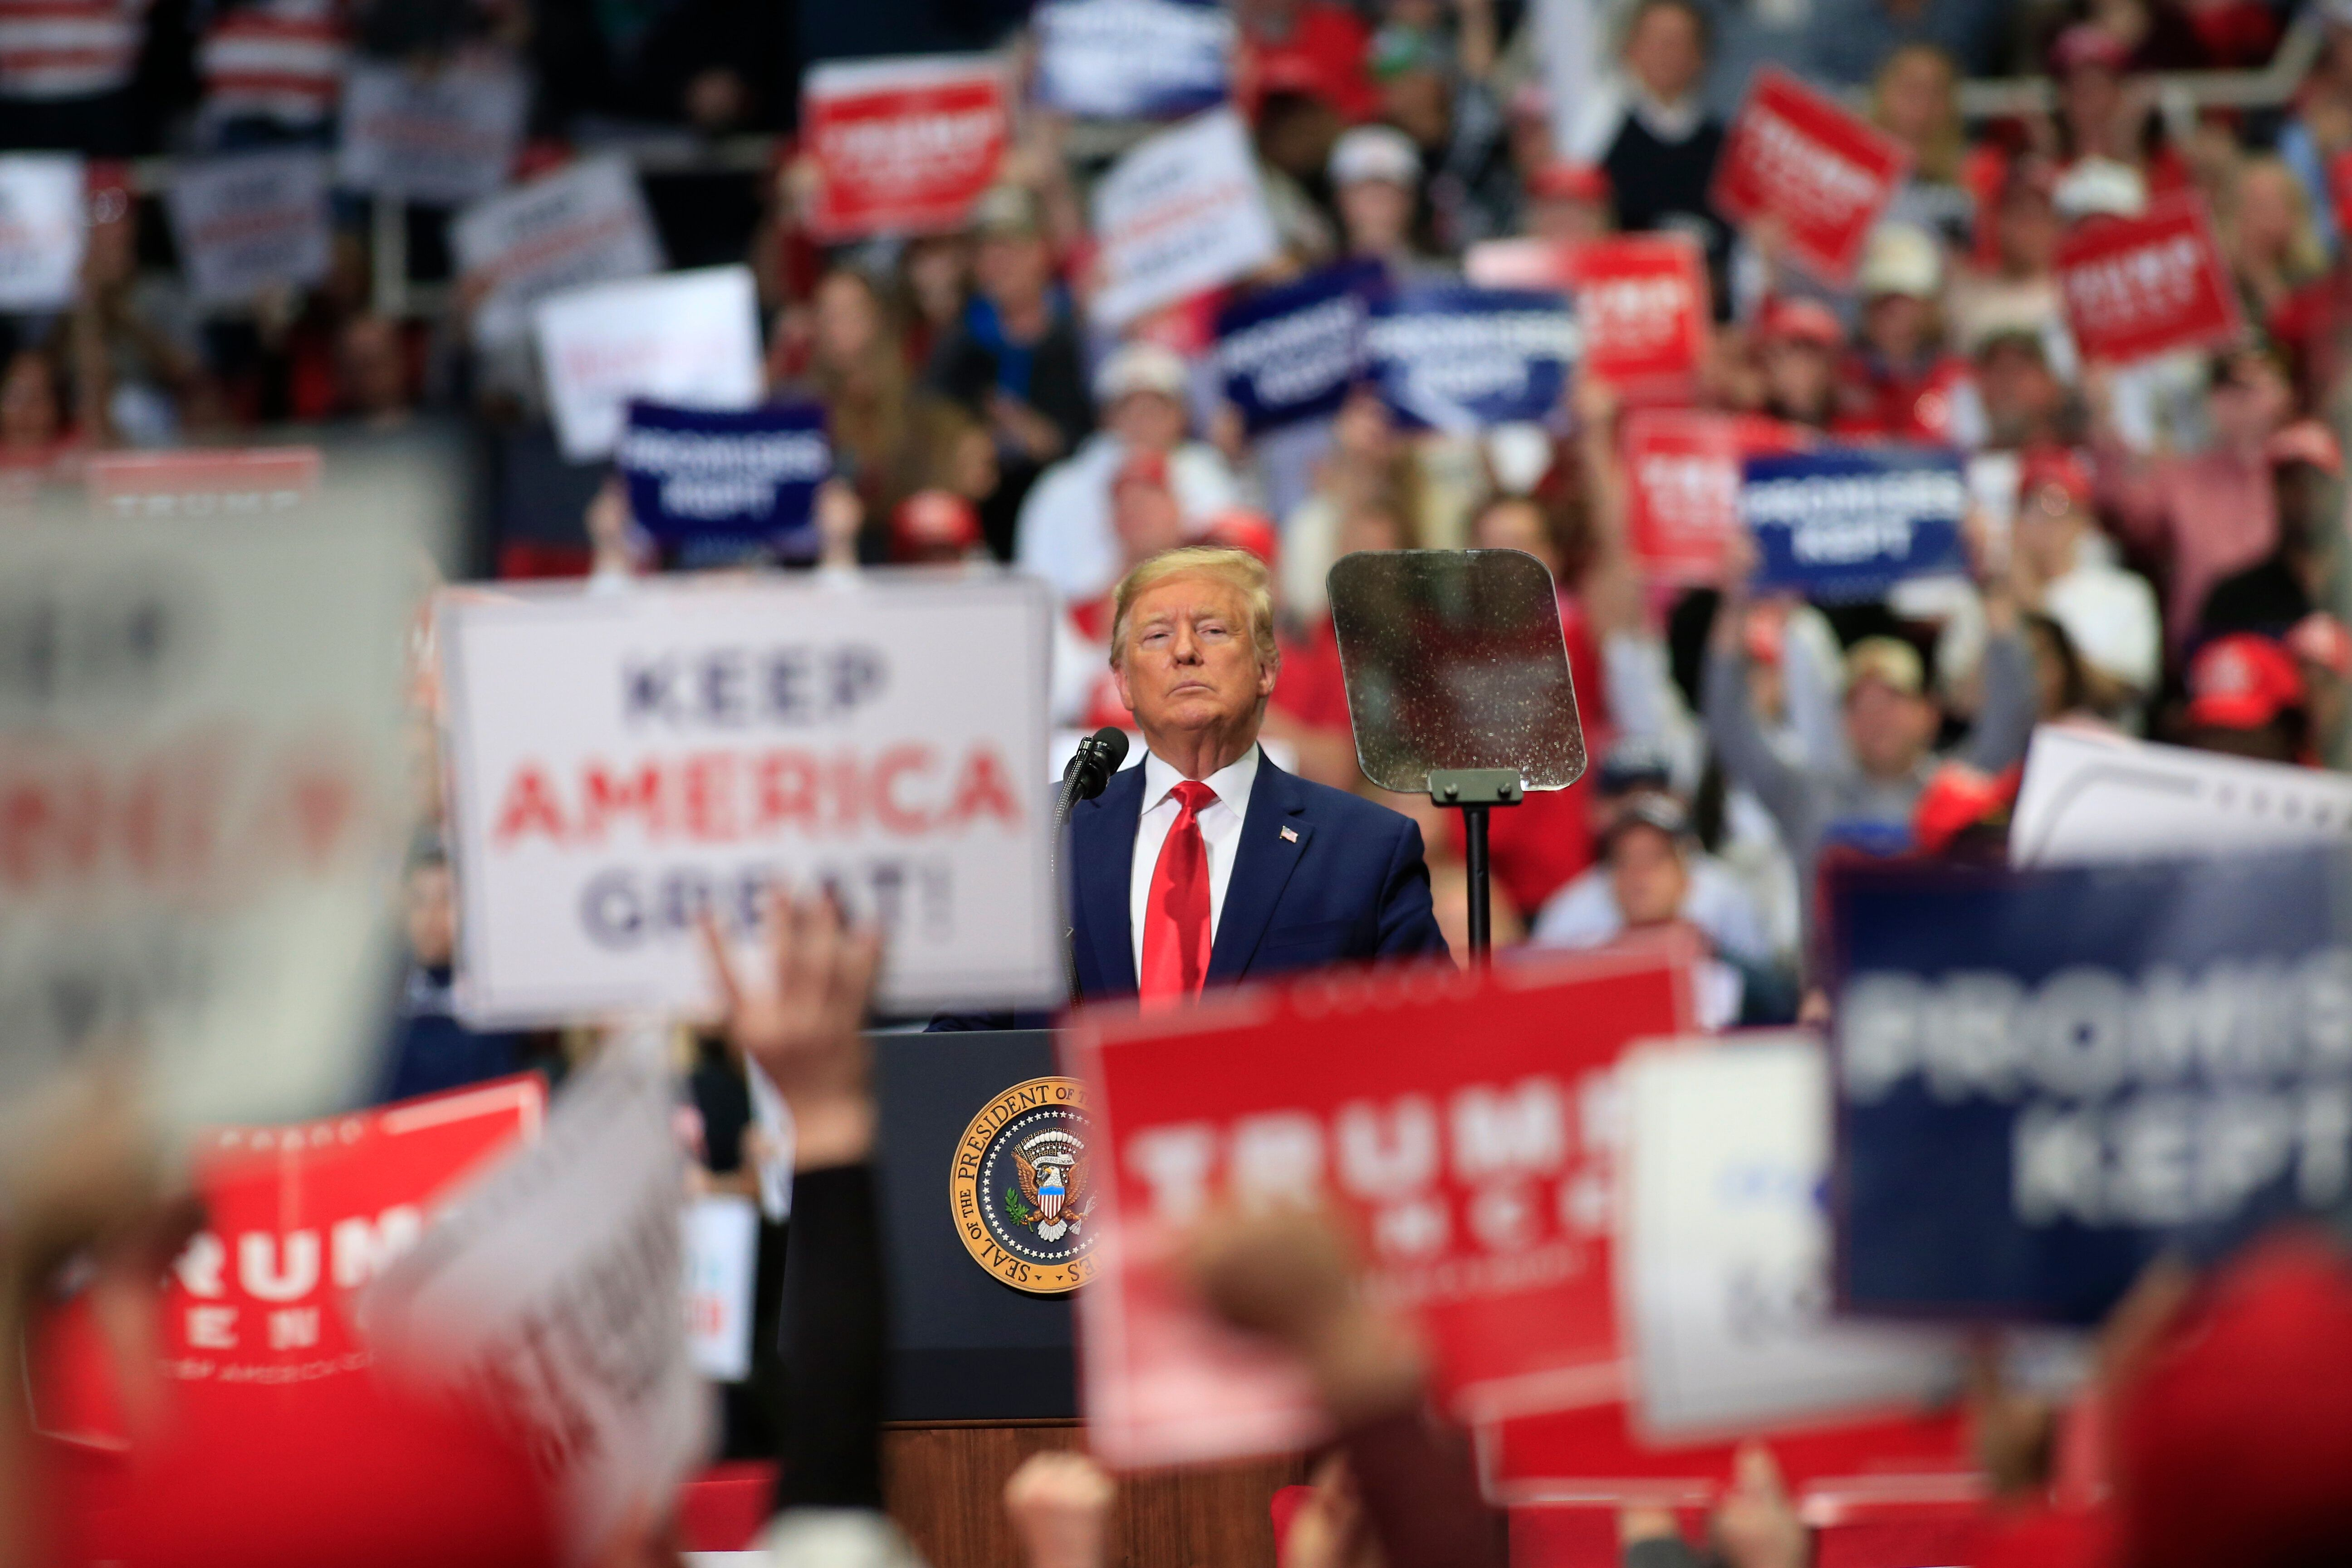 President Donald Trump speaks to supporters during a March 2 rally in Charlotte, North Carolina. His next rally is set for Tu